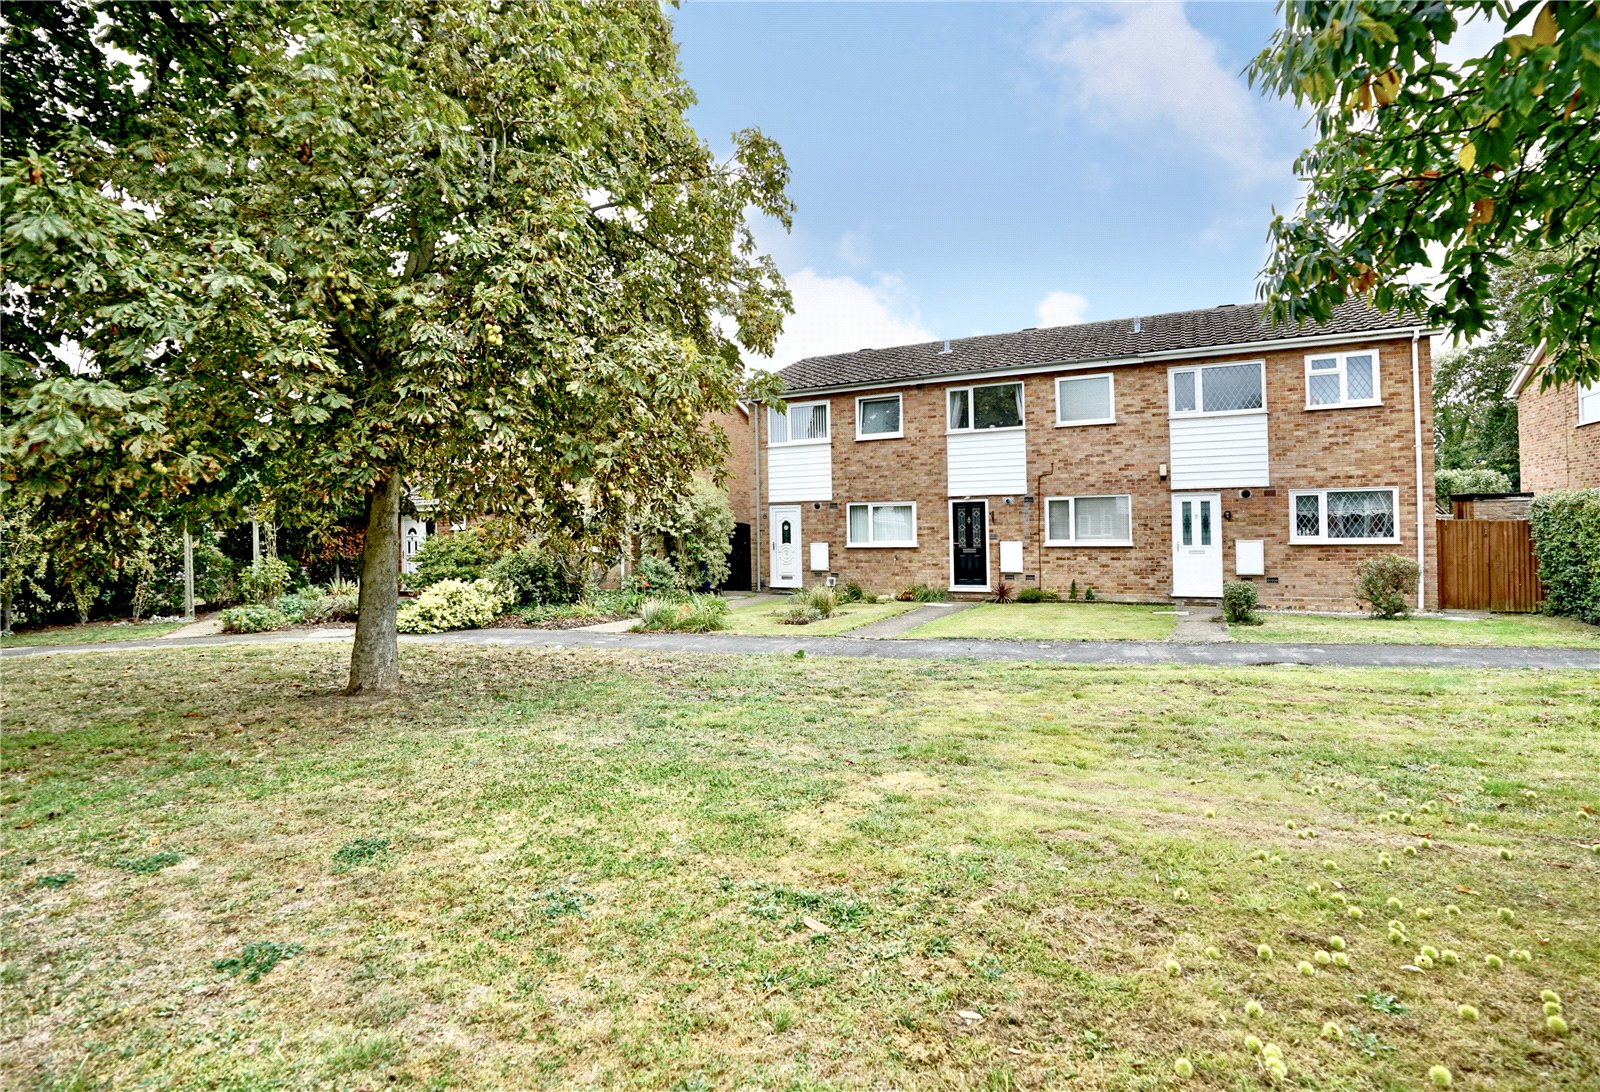 2 bed house for sale in Chestnut Walk, Little Paxton 0